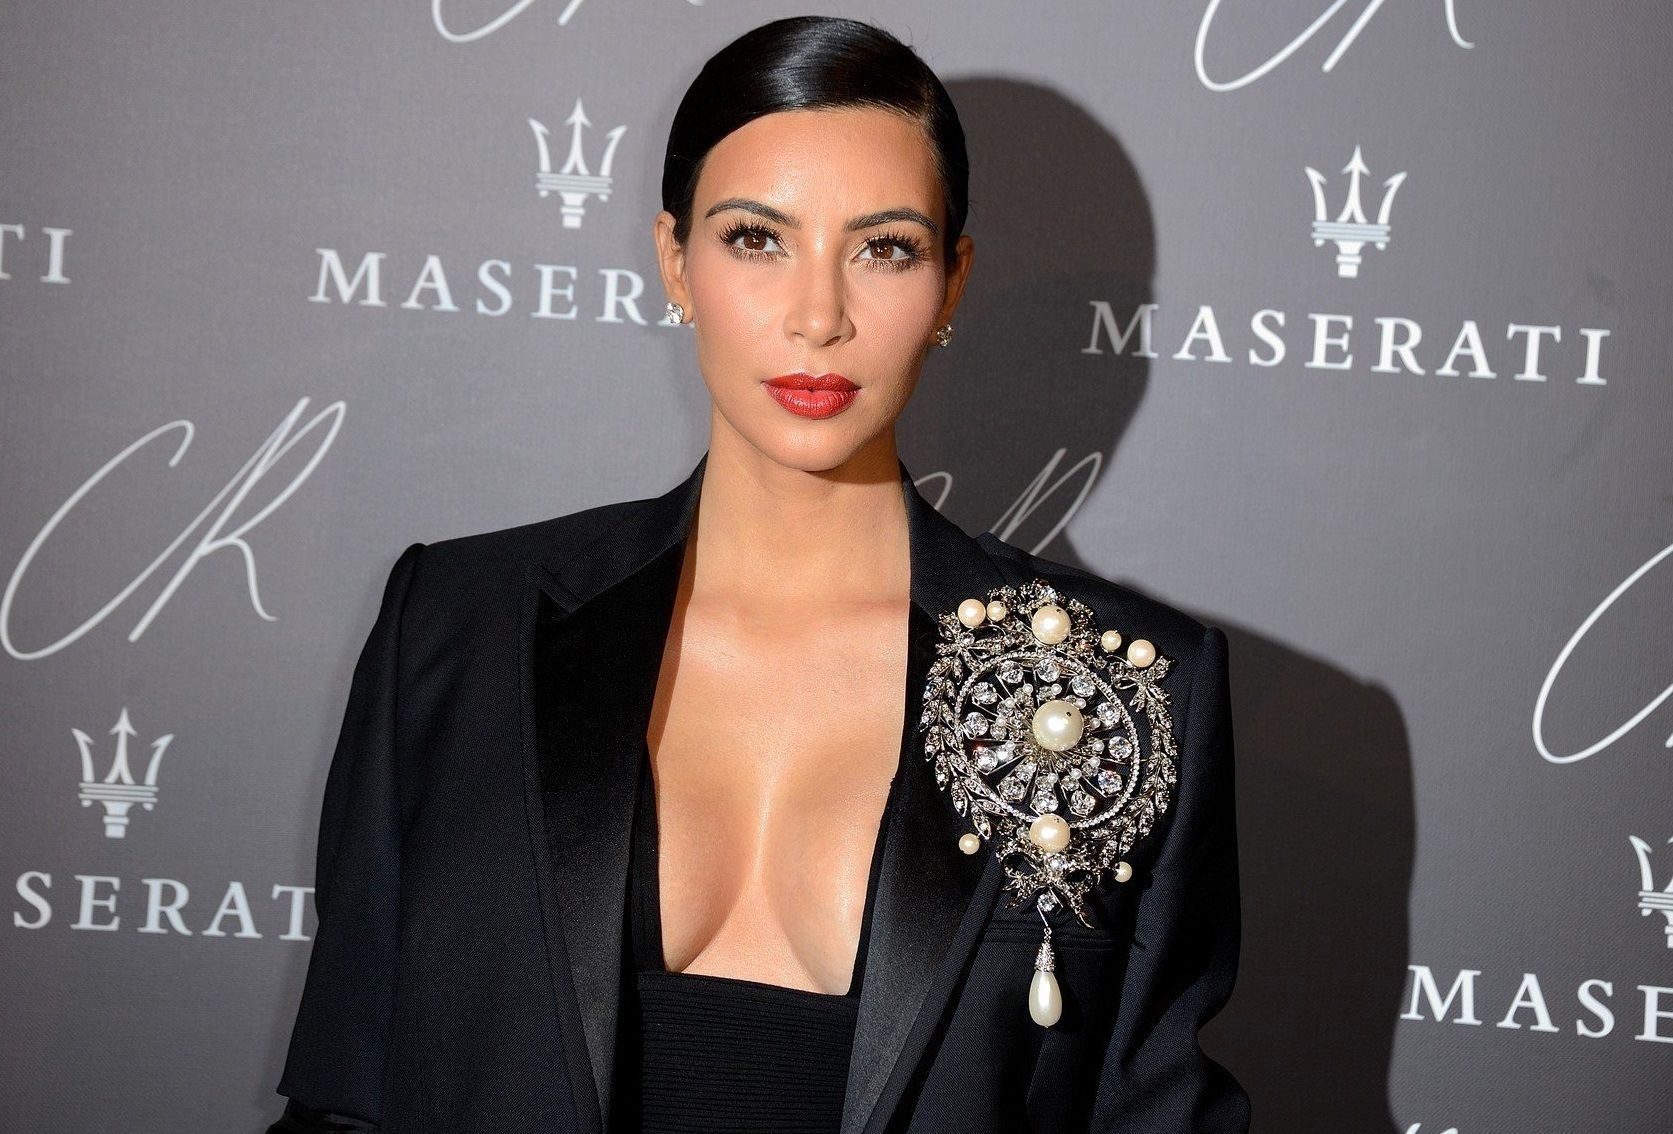 Kim Kardashian attending the CR Fashion Book Issue N.5 Launch Party held at Hotel Peninsula in Paris, France, on September 30, 2014. Photo by Nicolas Briquet/ABACAPRESS.COM